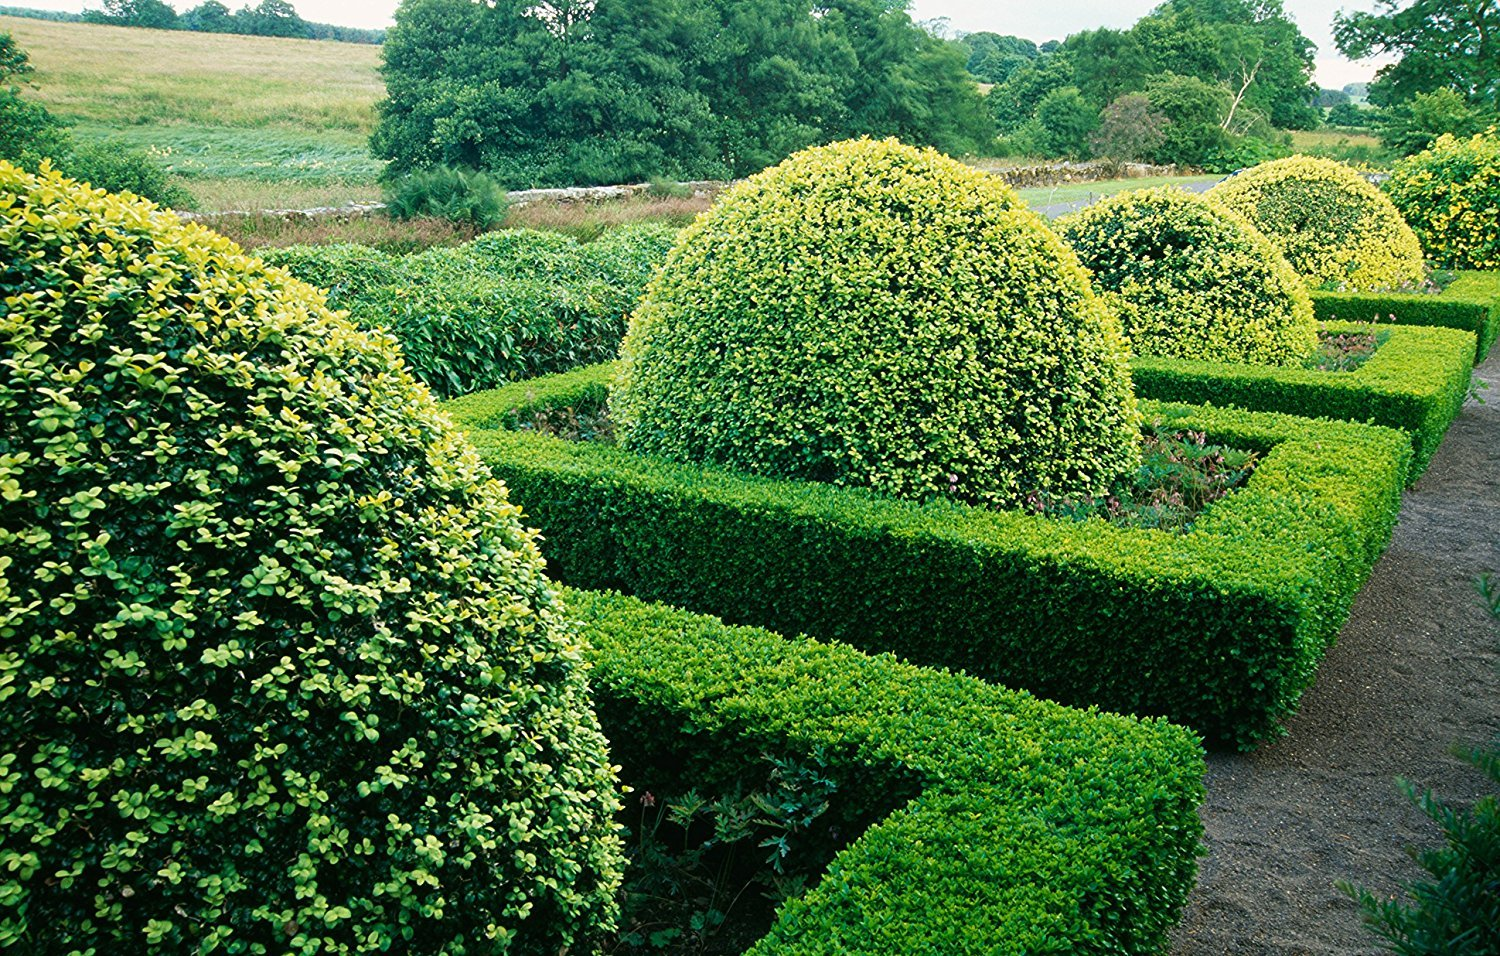 Japanese Boxwood Qty 15 Live Plants Buxus Fast Growing Cold Hardy Evergreen Shrub by Florida Foliage (Image #5)